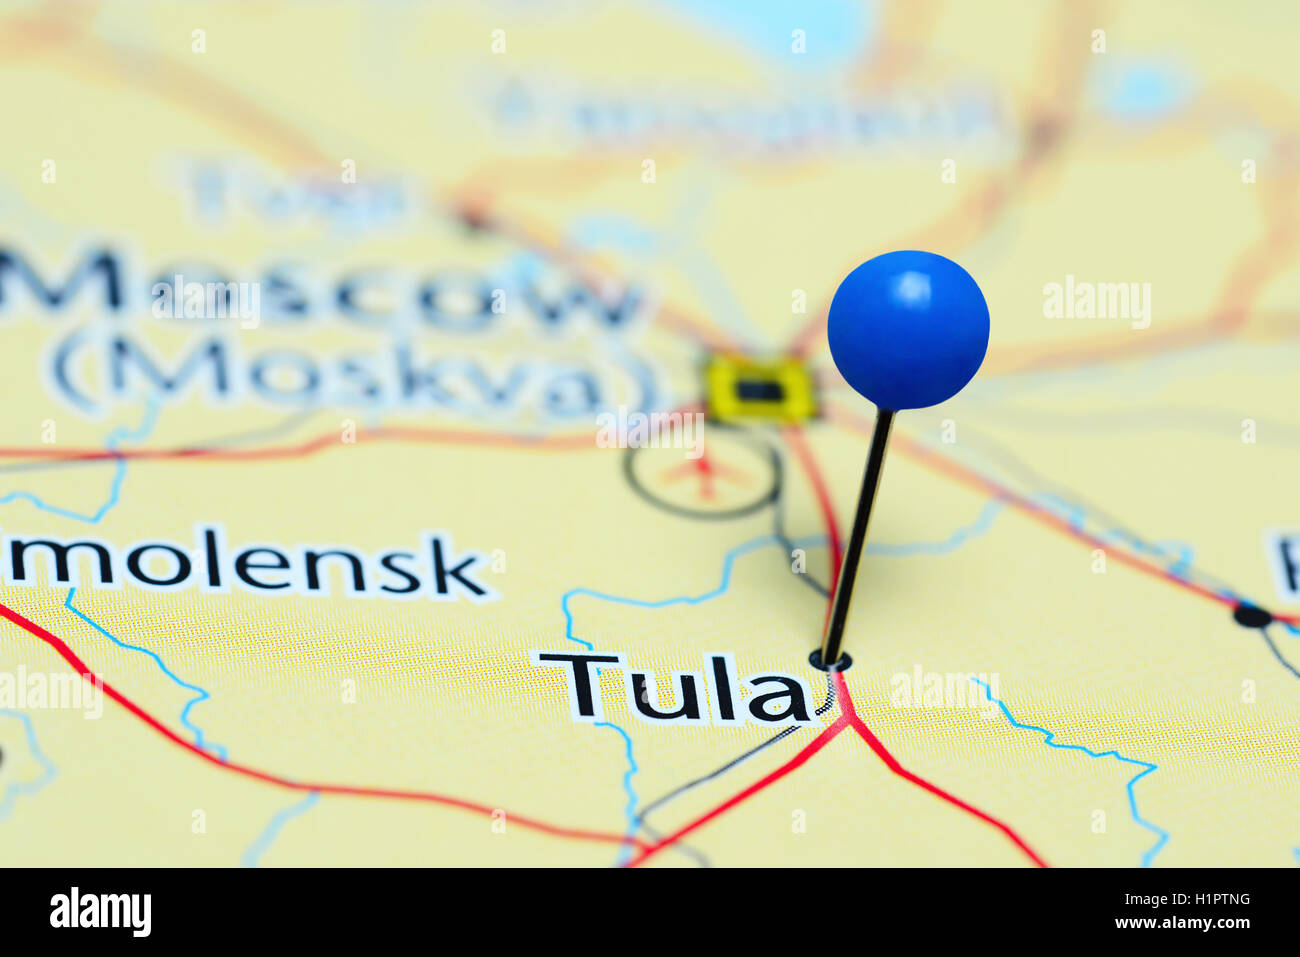 Tula pinned on a map of Russia Stock Photo Royalty Free Image